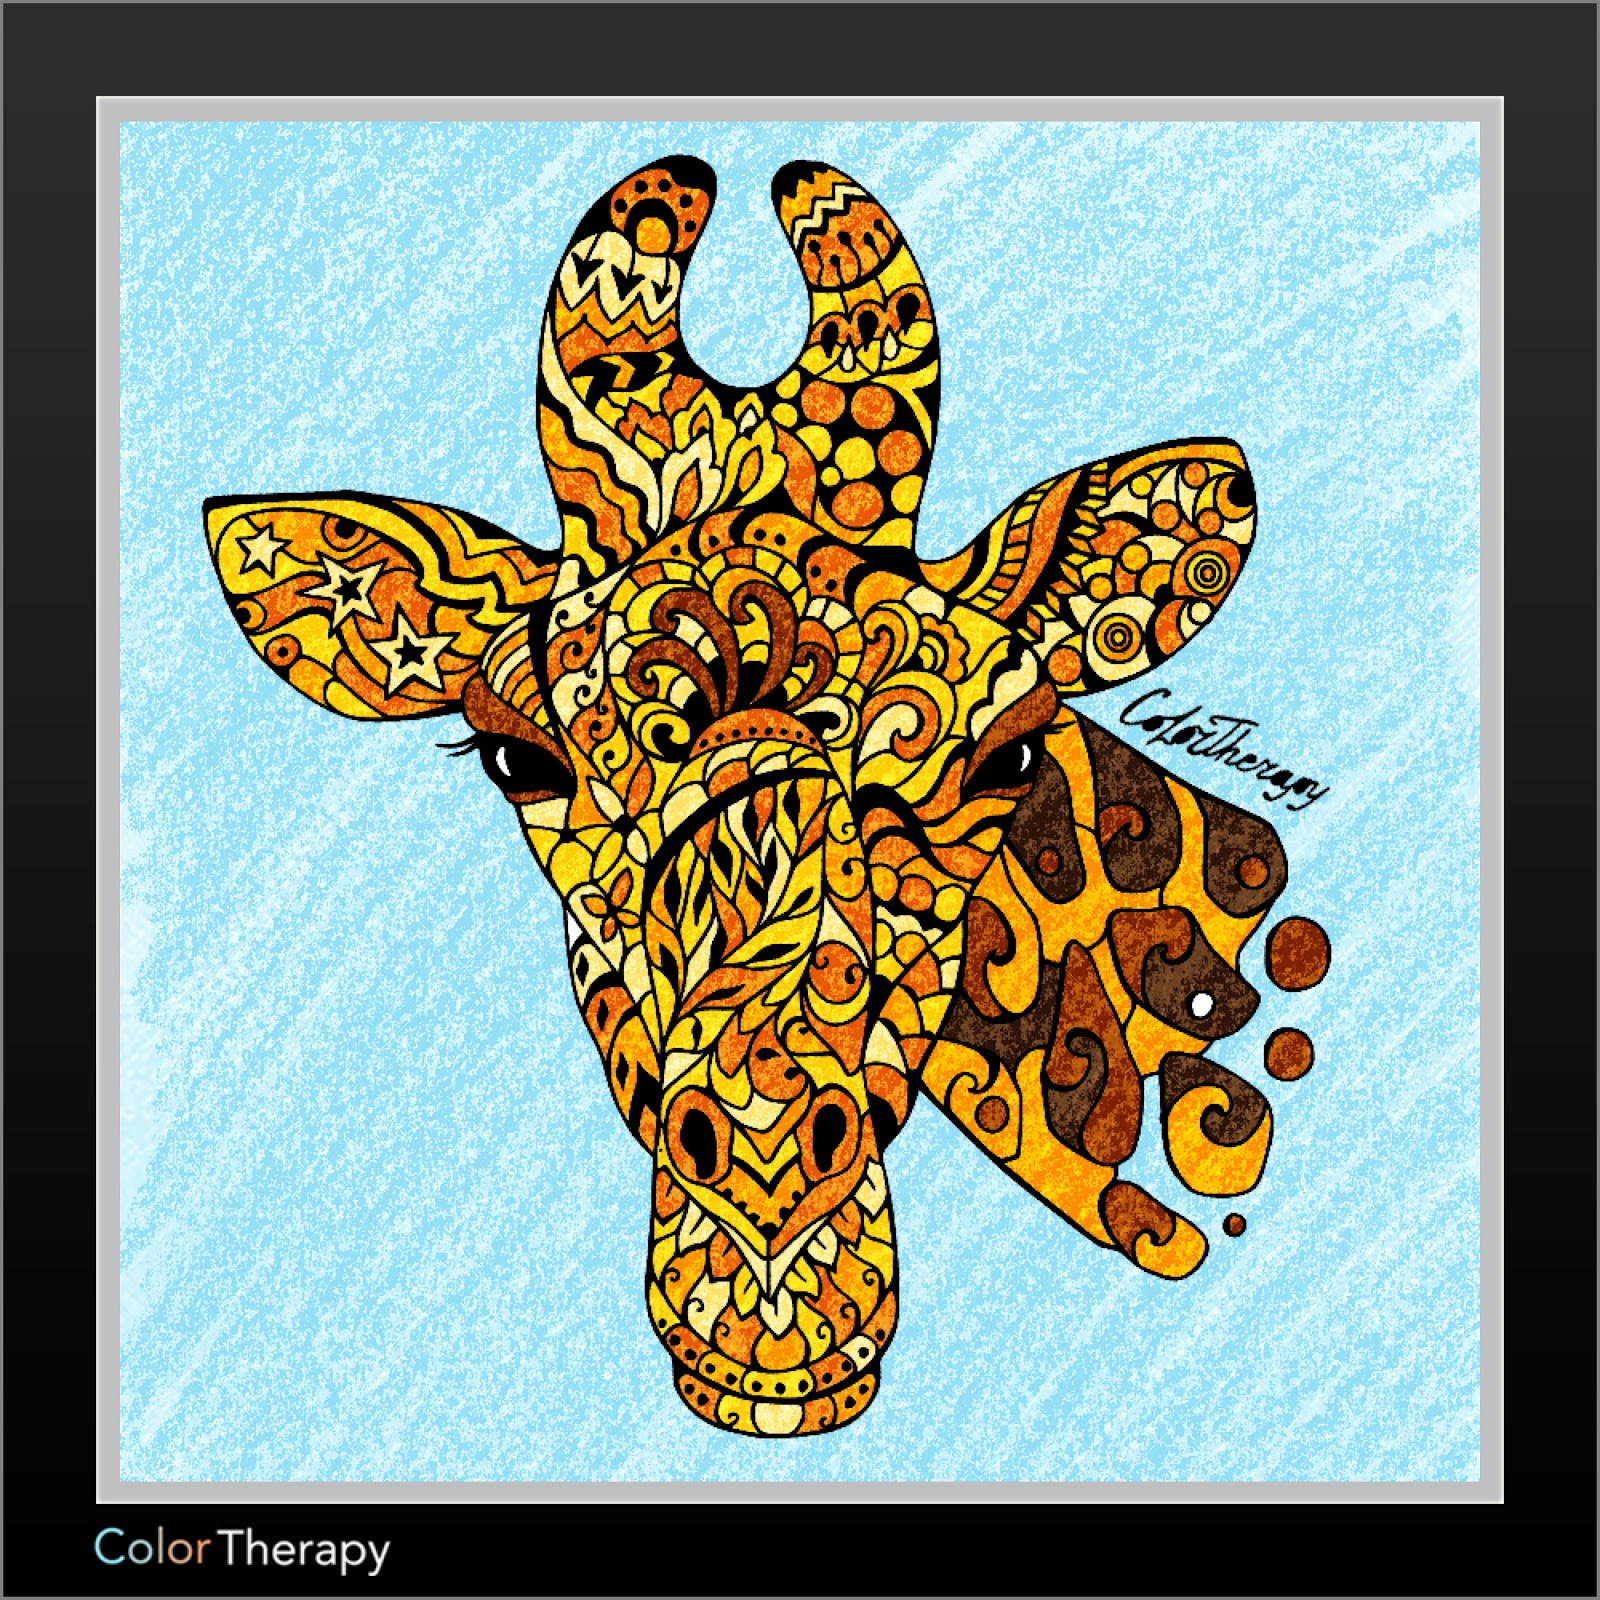 Color therapy anti stress coloring book app - Color Therapy Giraffe Jpg